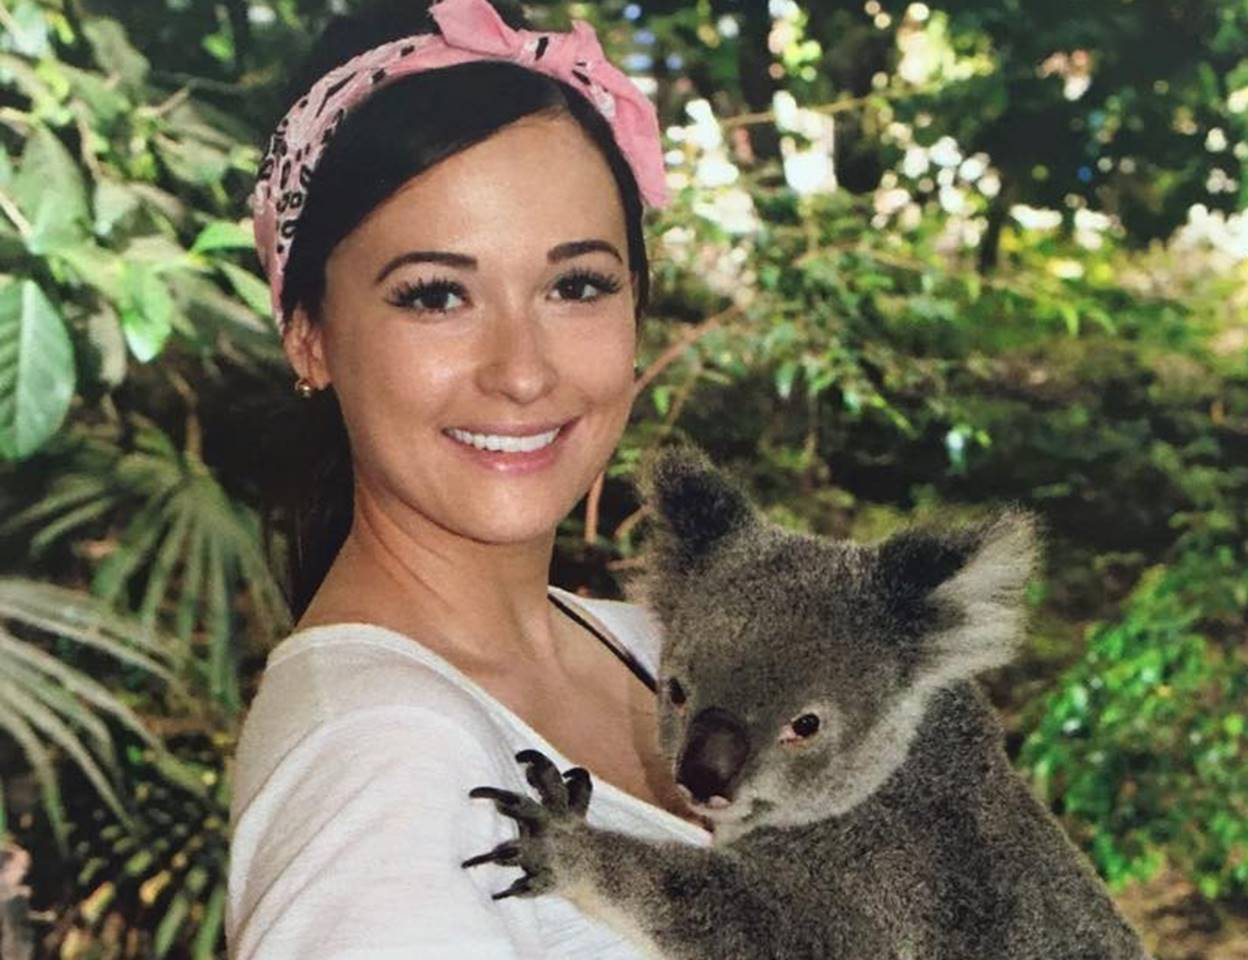 kacey musgraves with koala